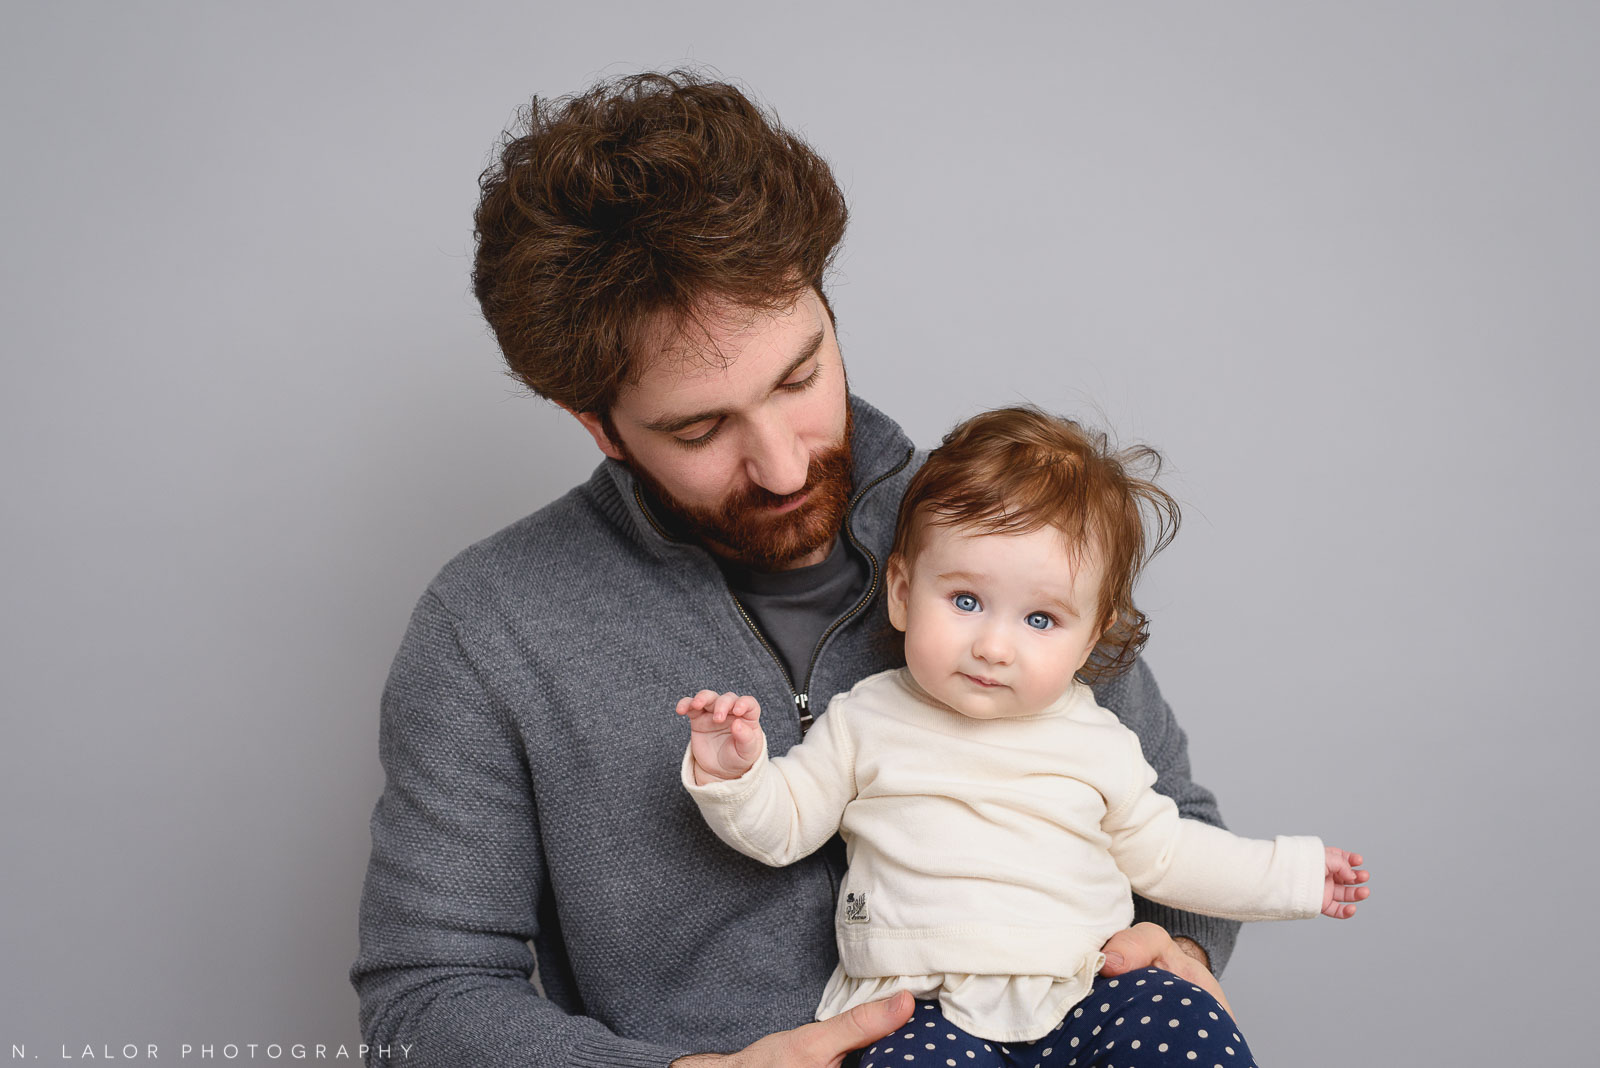 Dad with his 6-month old baby girl. Family photo session by N. Lalor Photography. Studio located in Greenwich Connecticut.